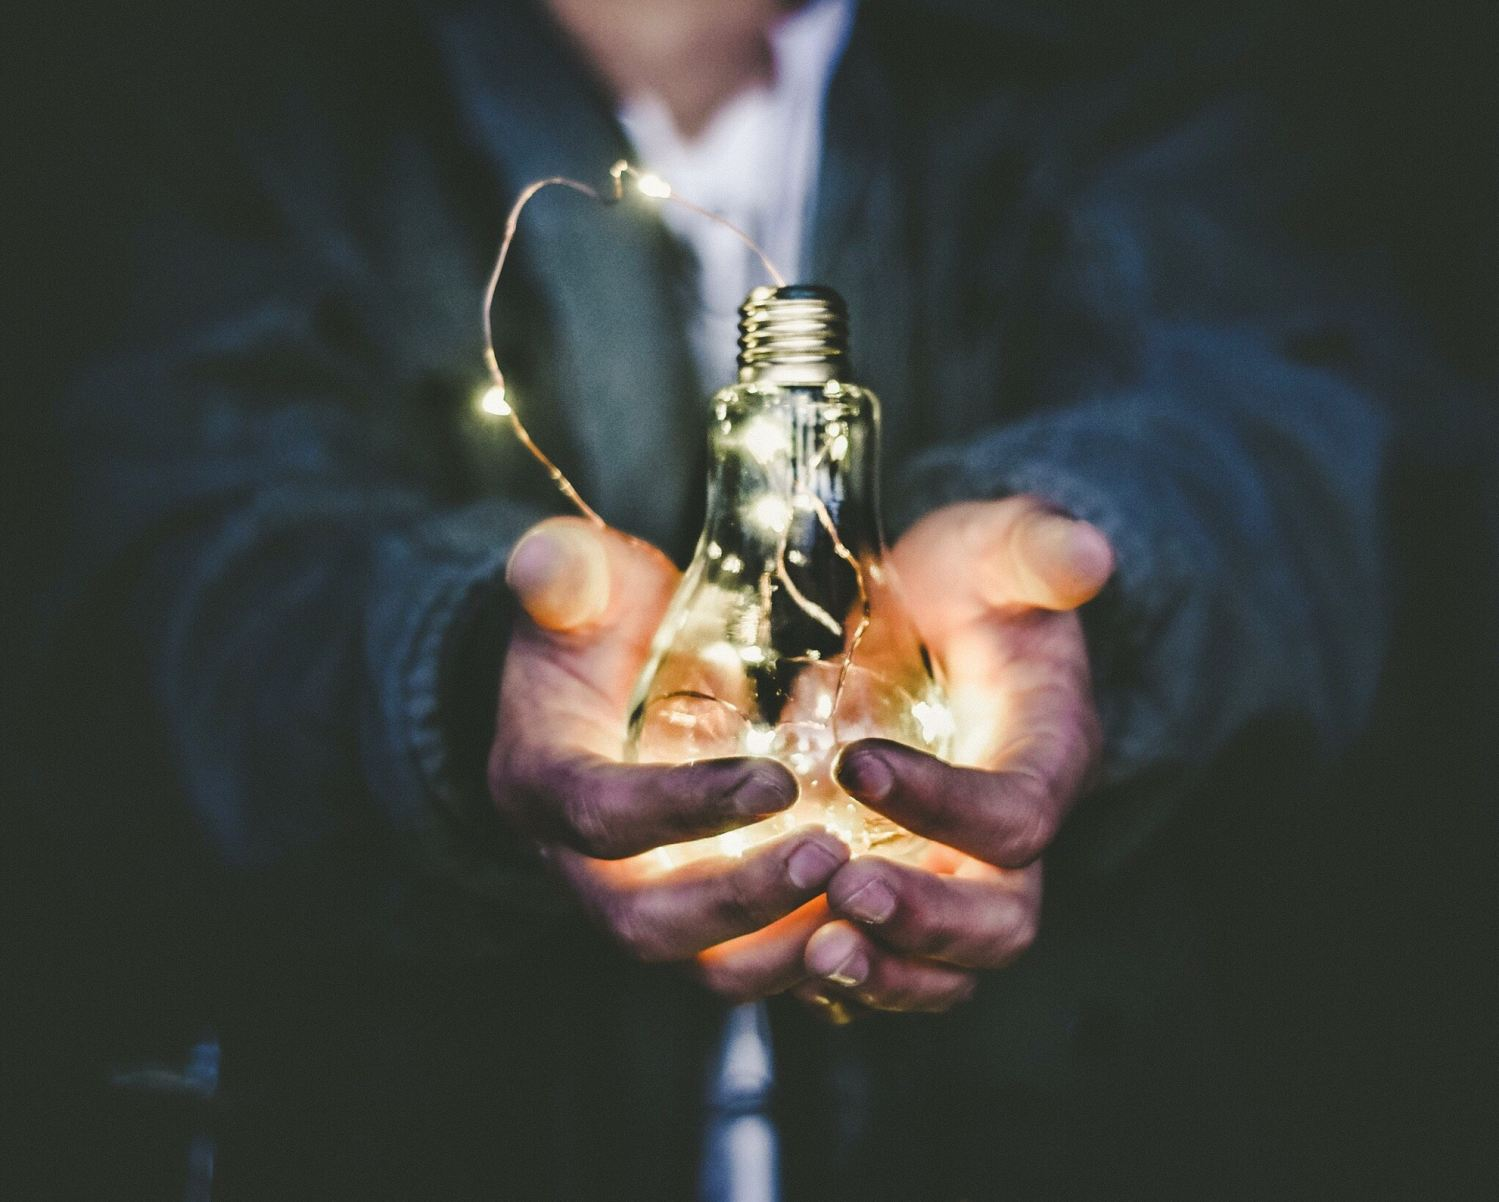 Picture of a man holding a light bulb